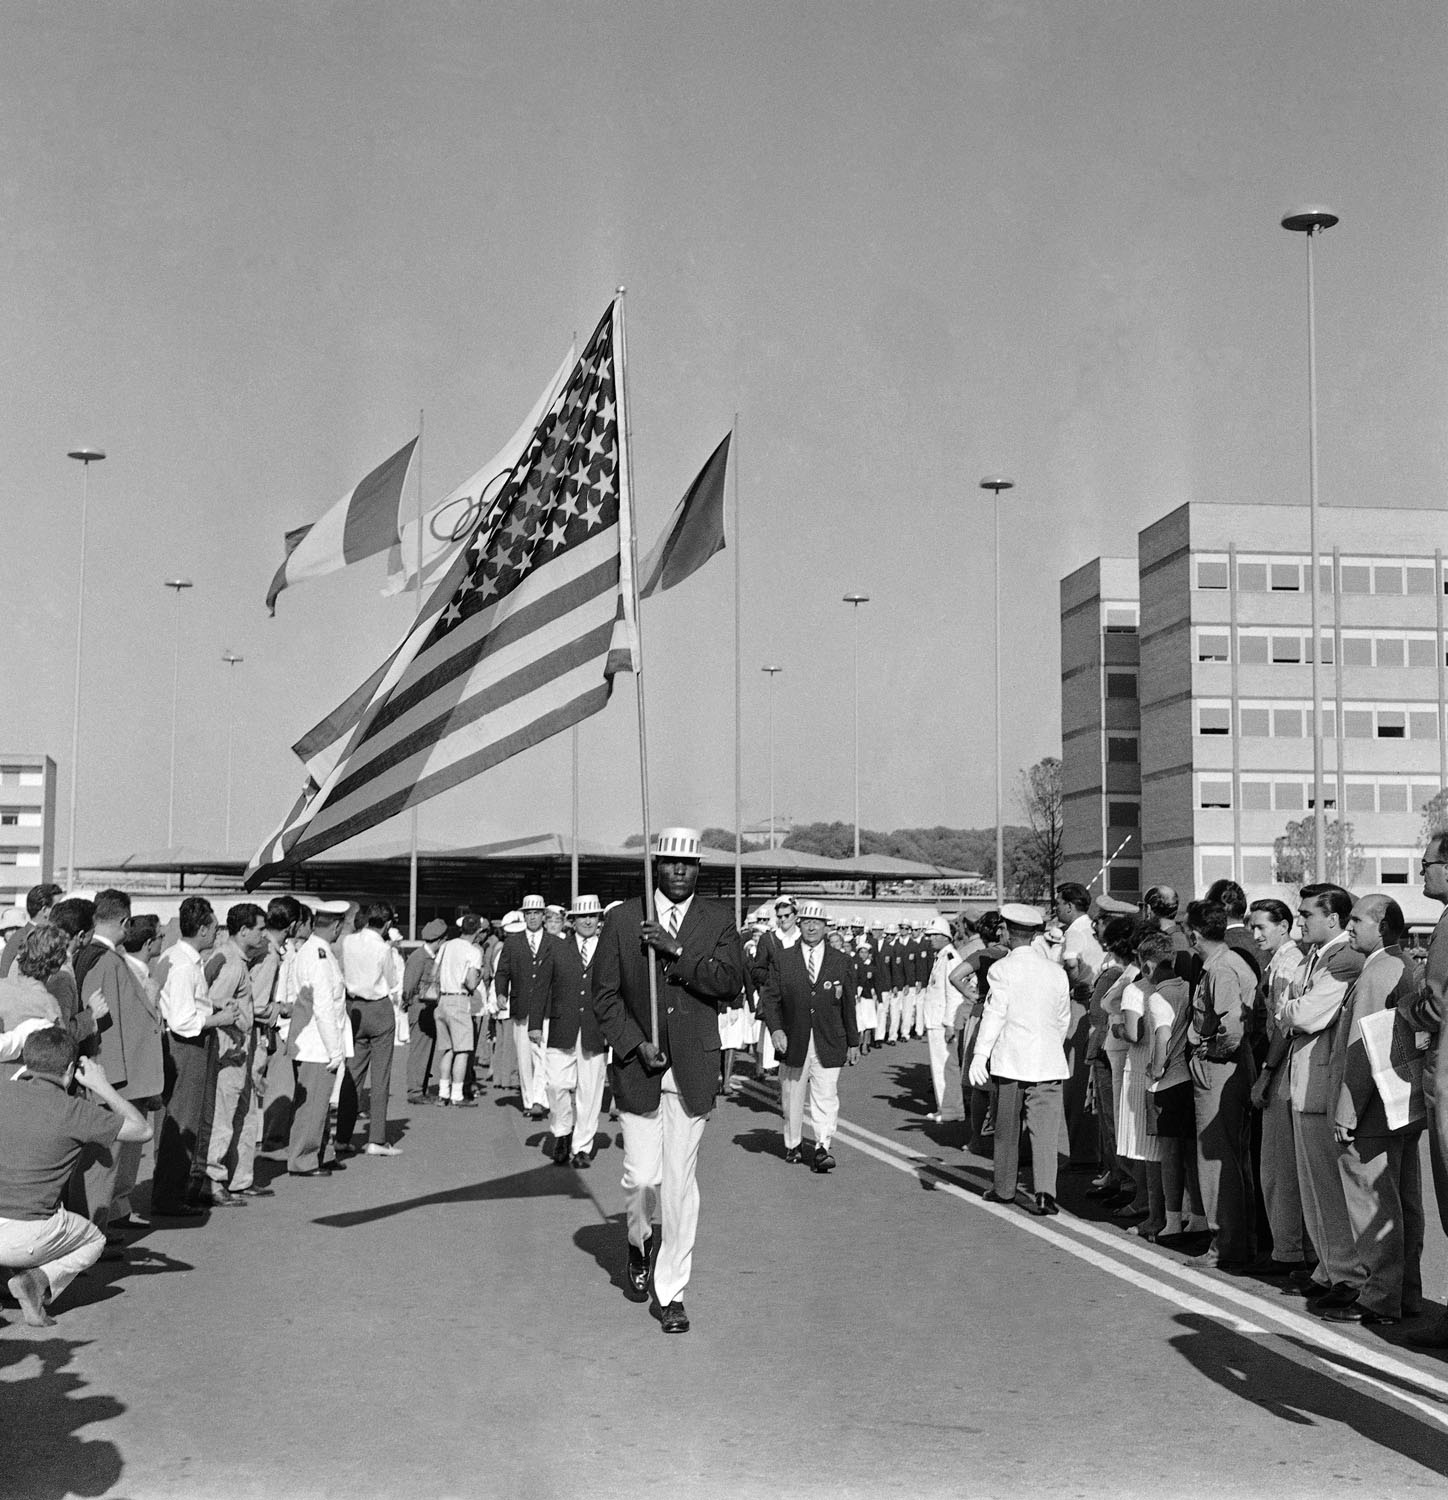 Track and Field athlete Rafer Johnson carries the American flag while leading his team out of the Olympic Village to march in the opening ceremony of the Rome Summer Olympics in 1960.